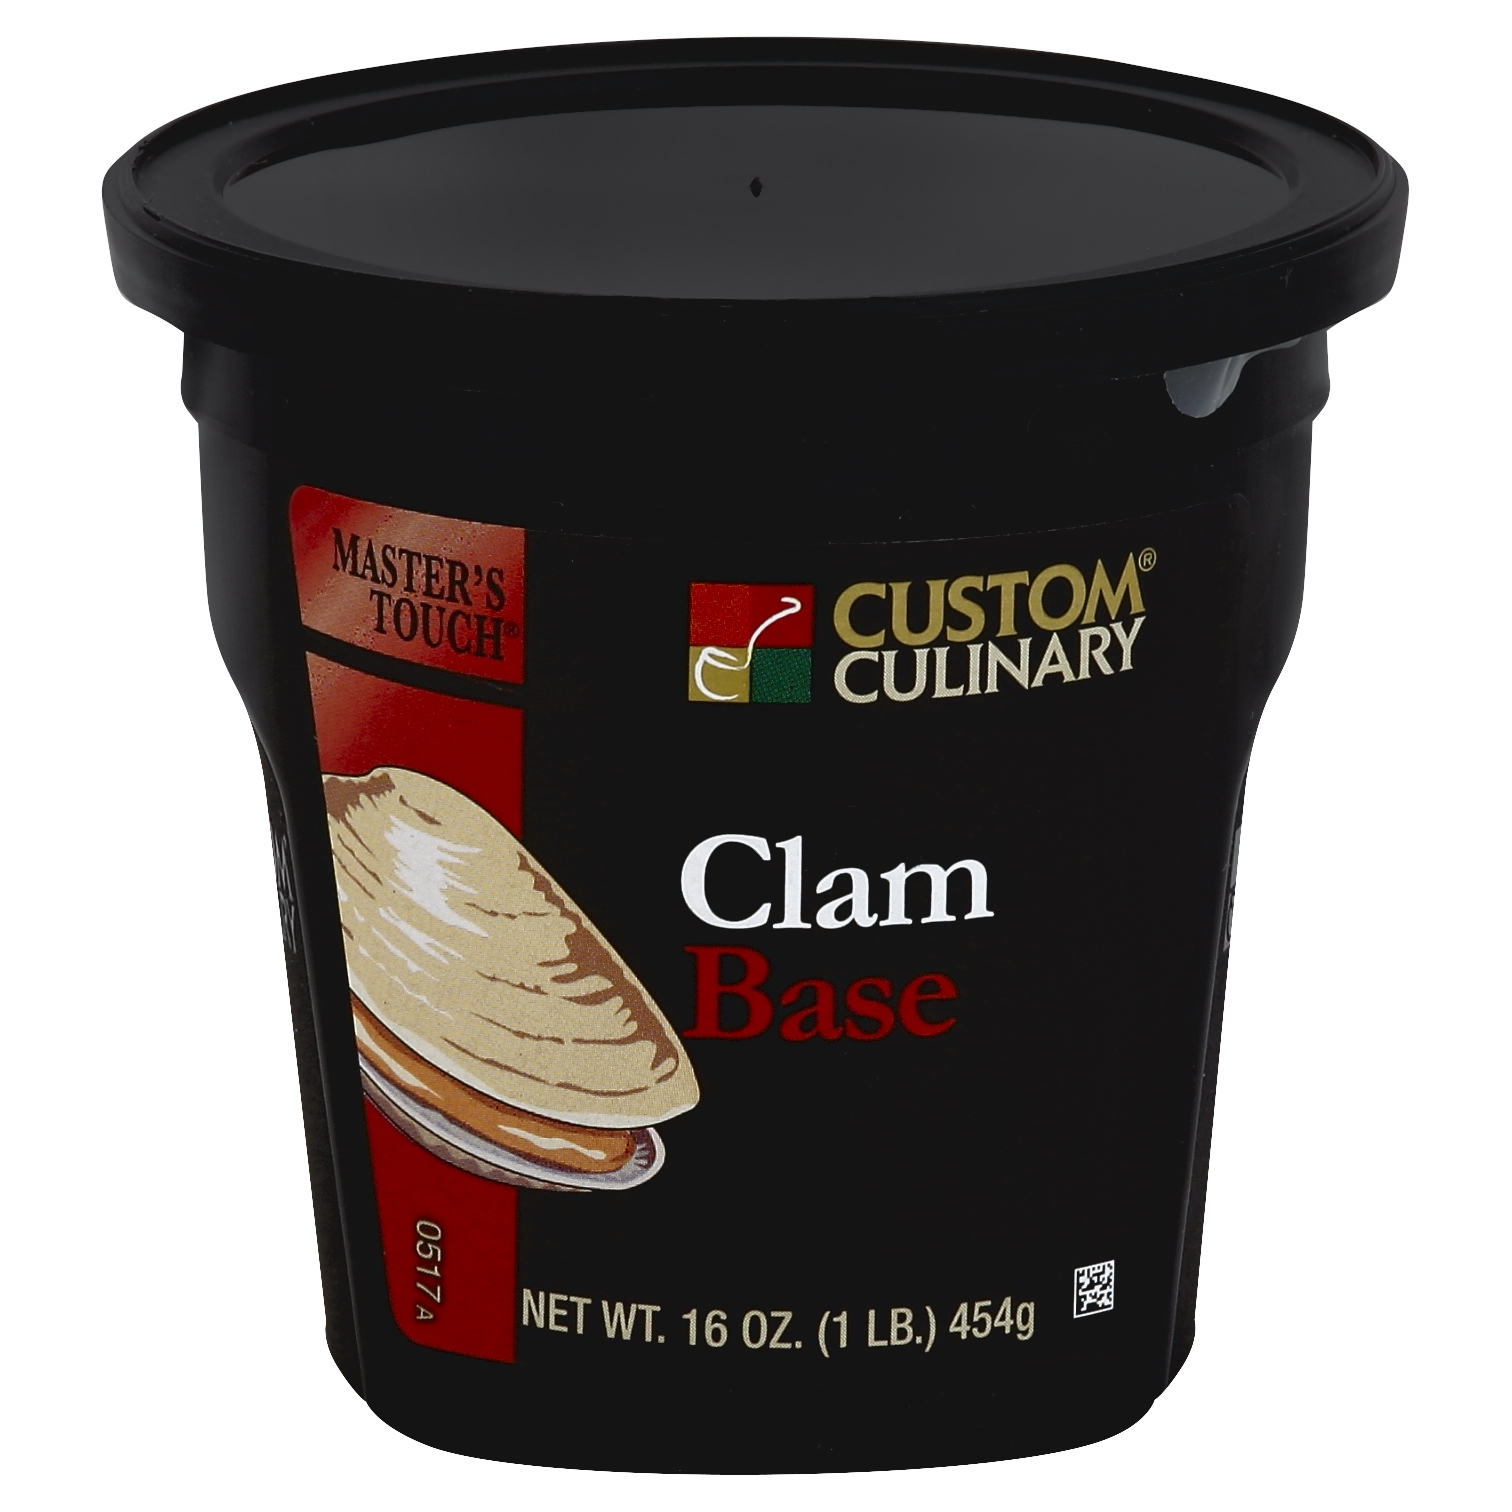 0517 - Masters Touch Clam Base